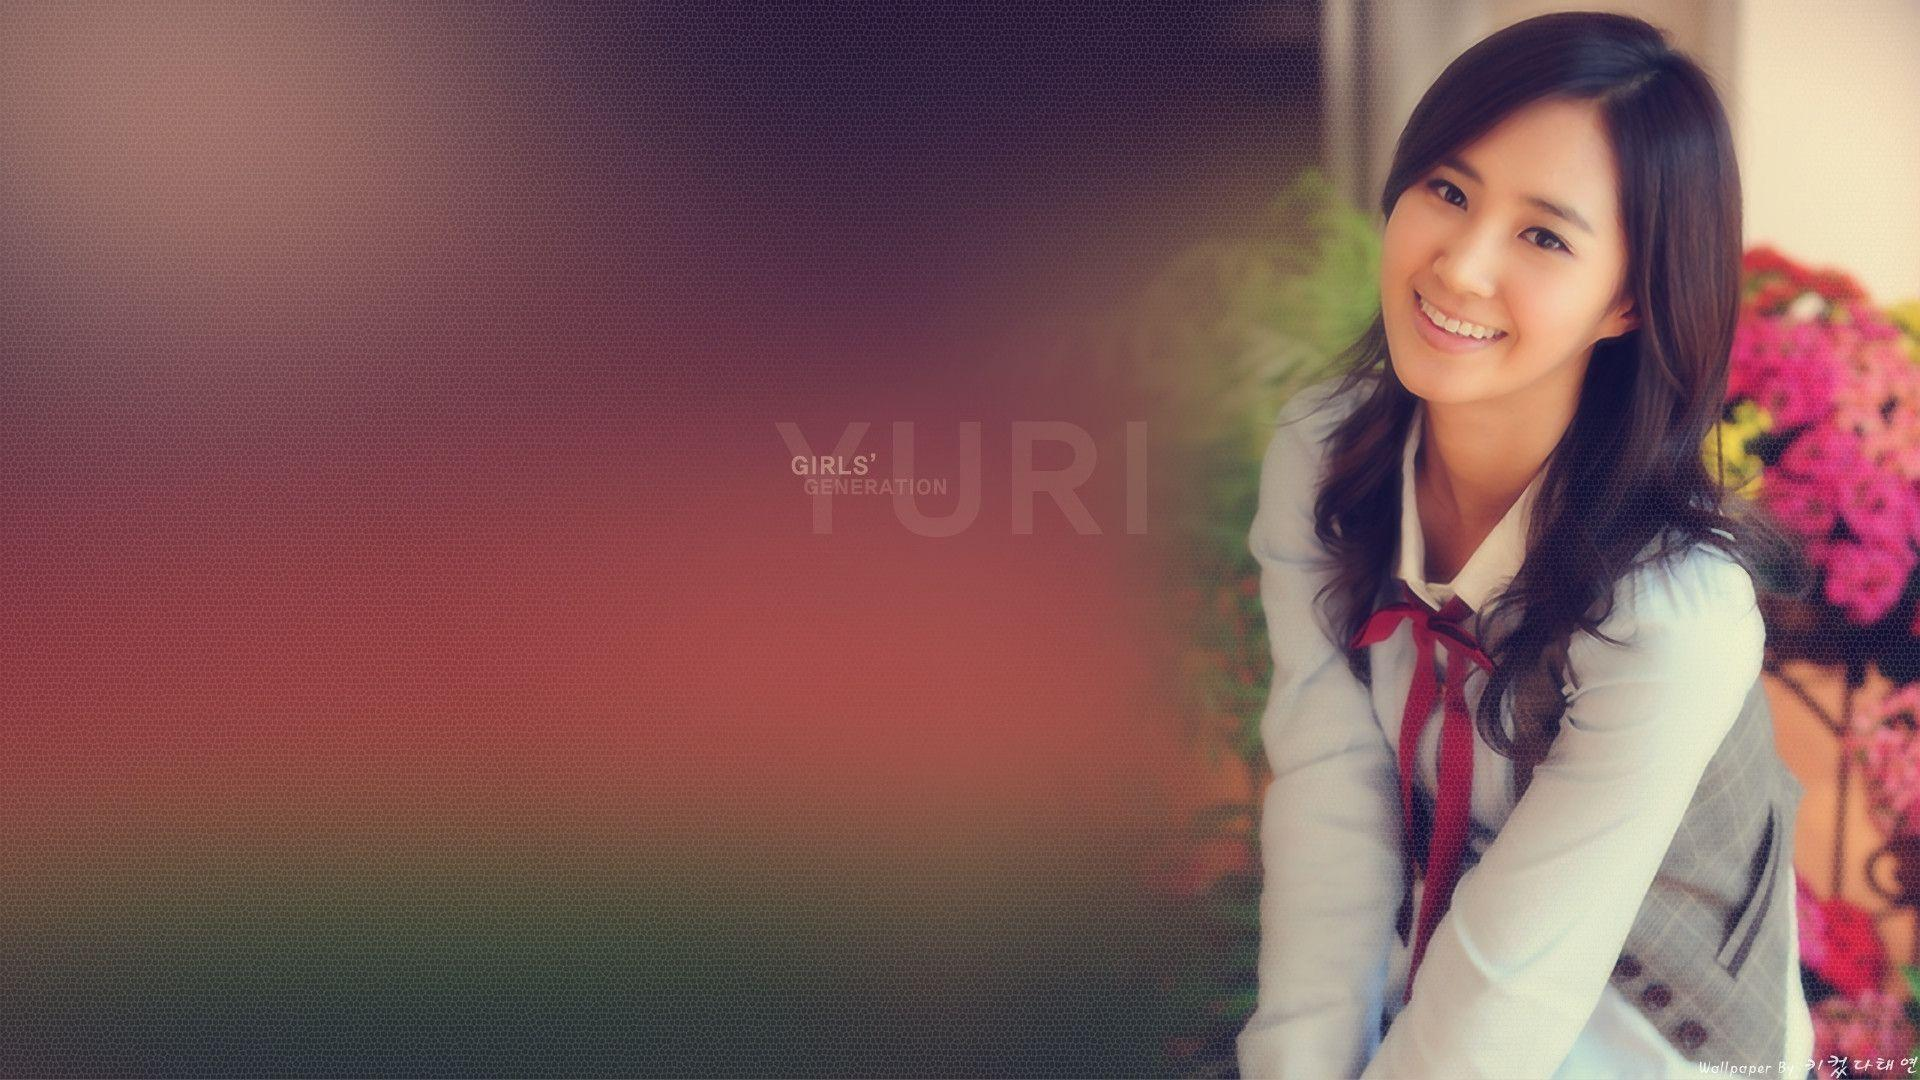 yuri snsd wallpaper 2013 - photo #36